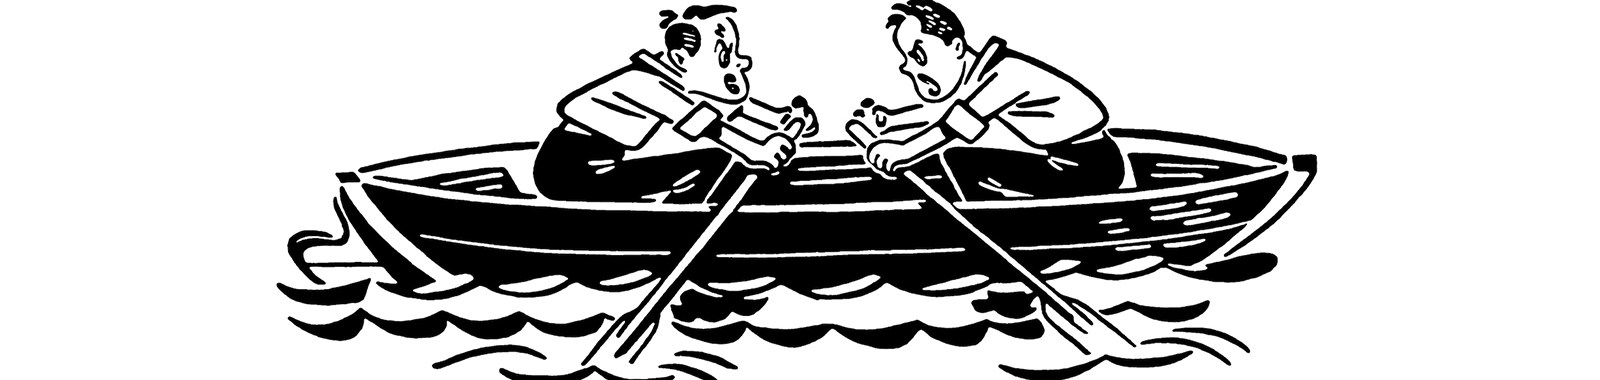 Two People in canoe Paddling in Opposite Directions